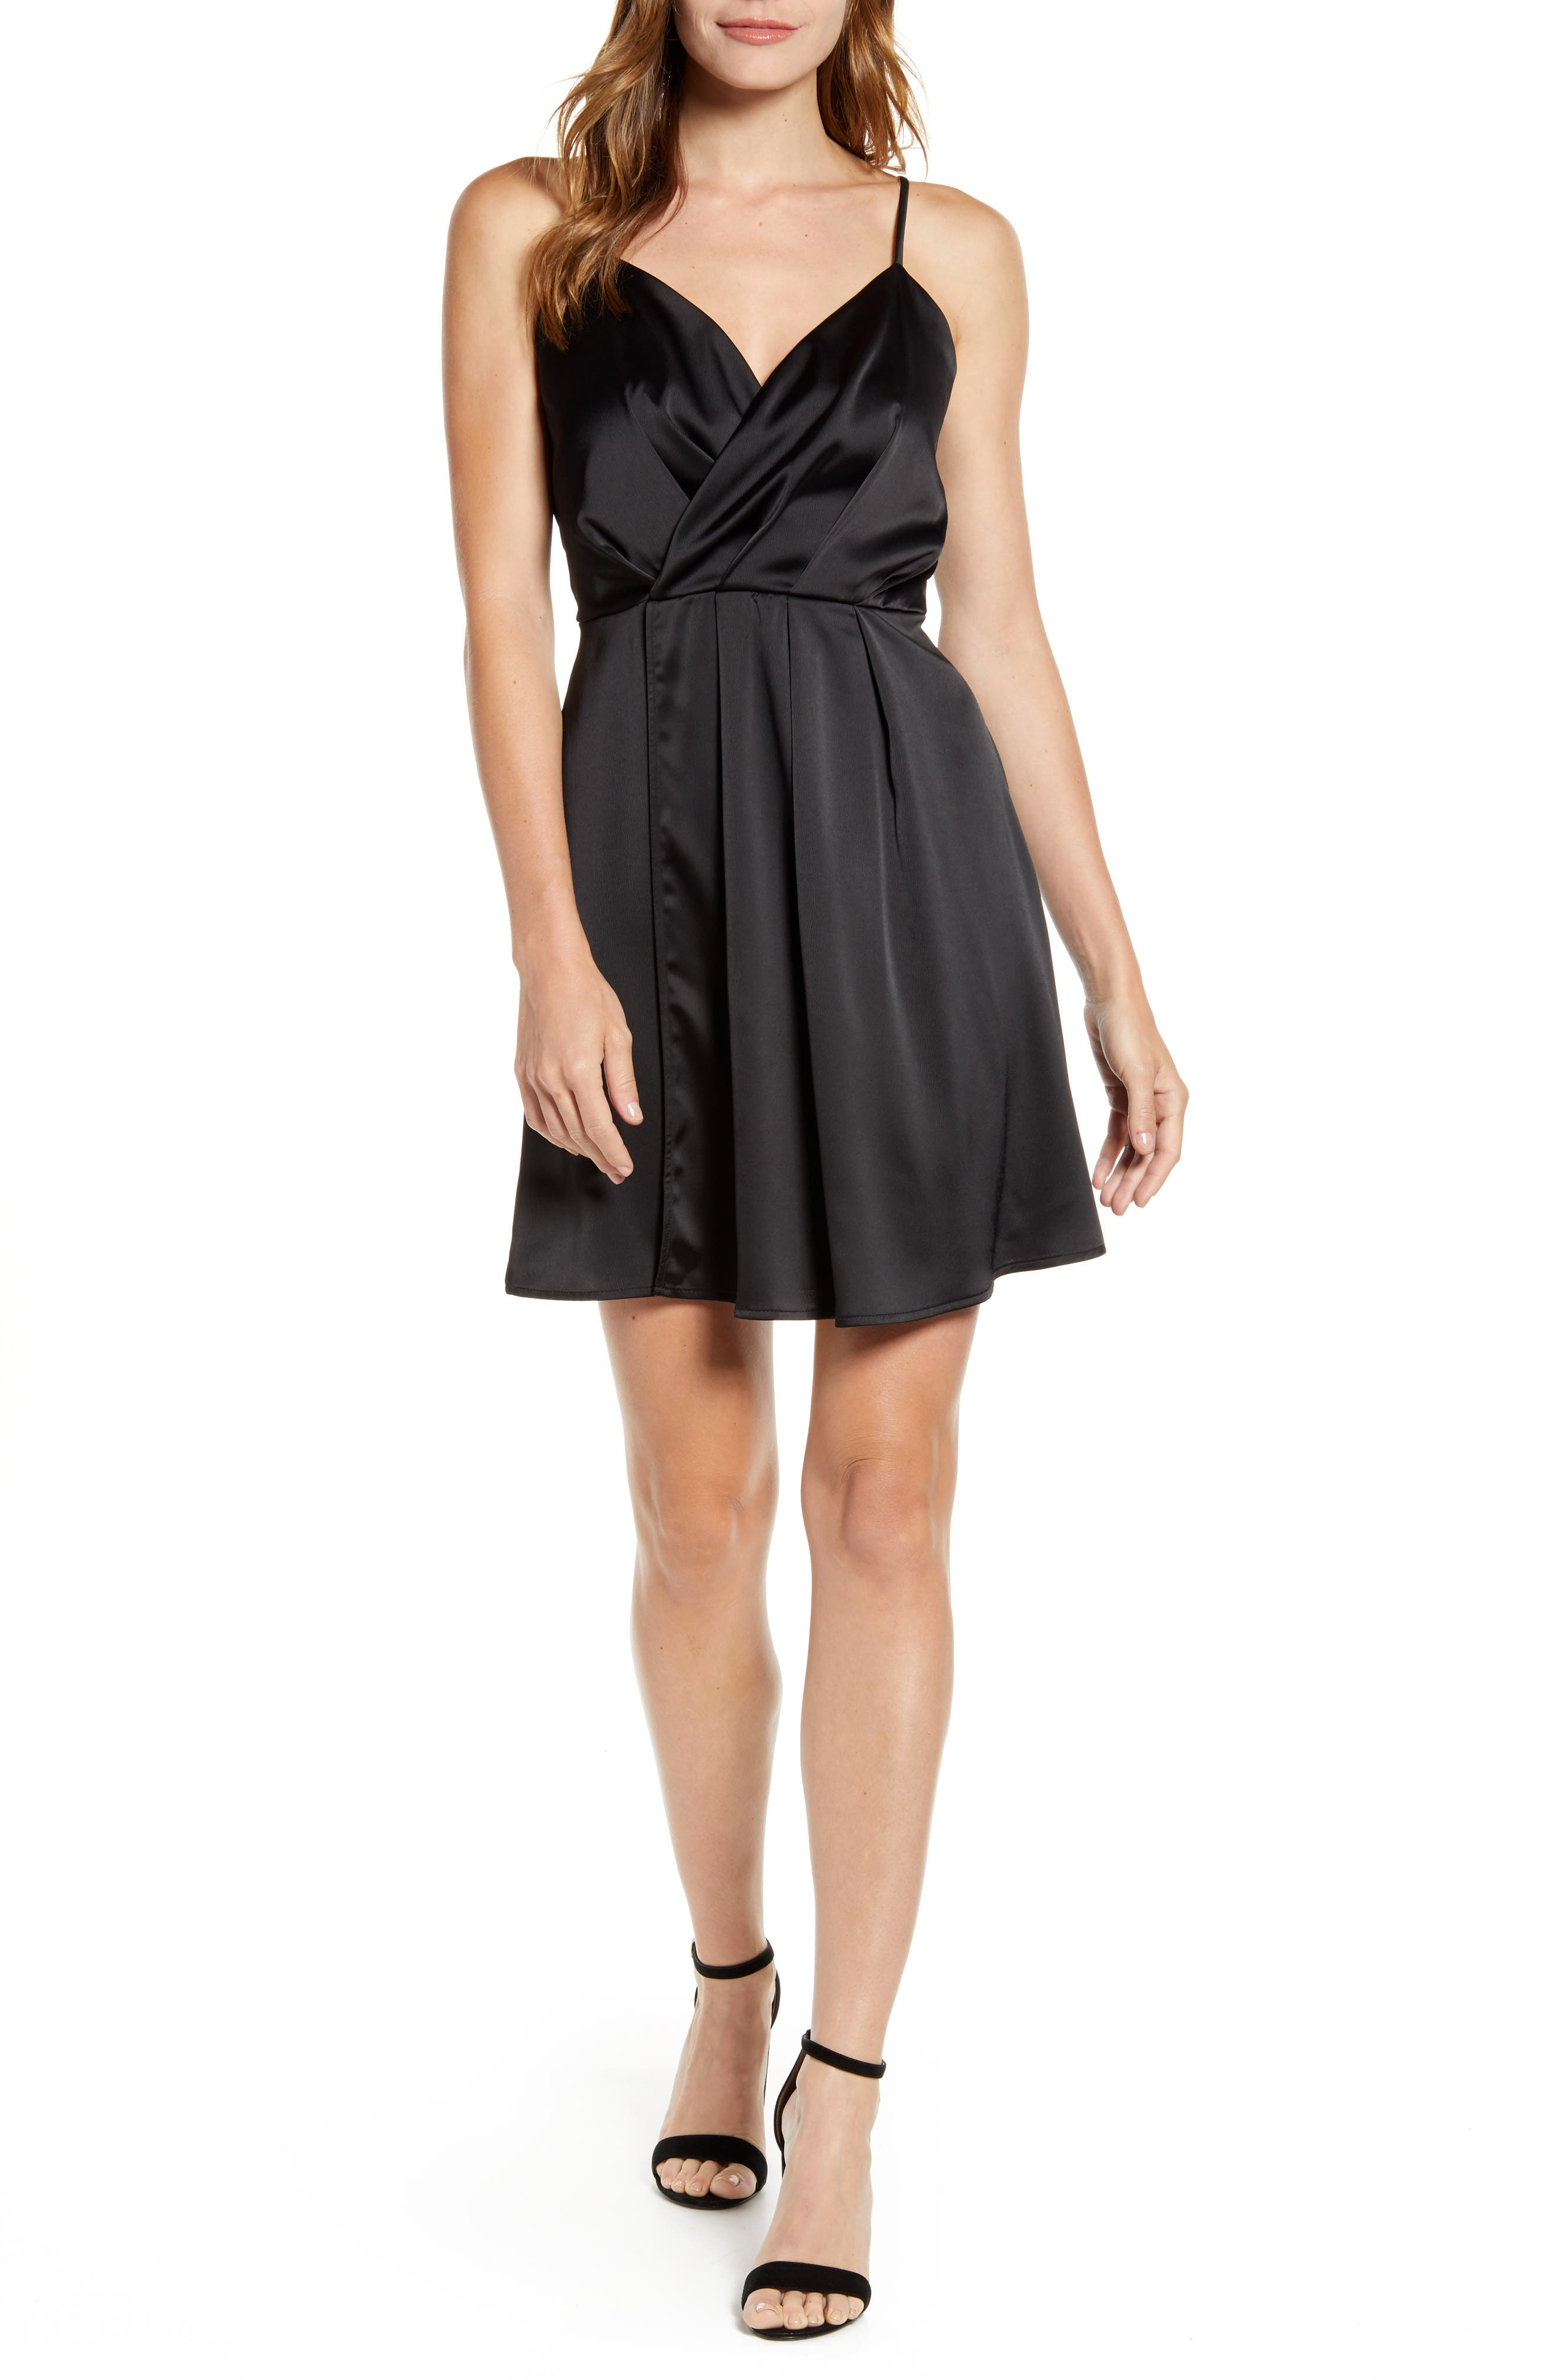 Petite Gibson X Hot Summer Nights Natalie Satin Faux Wrap Dress, Black (Regular & Petite) (Nordstrom Exclusive)